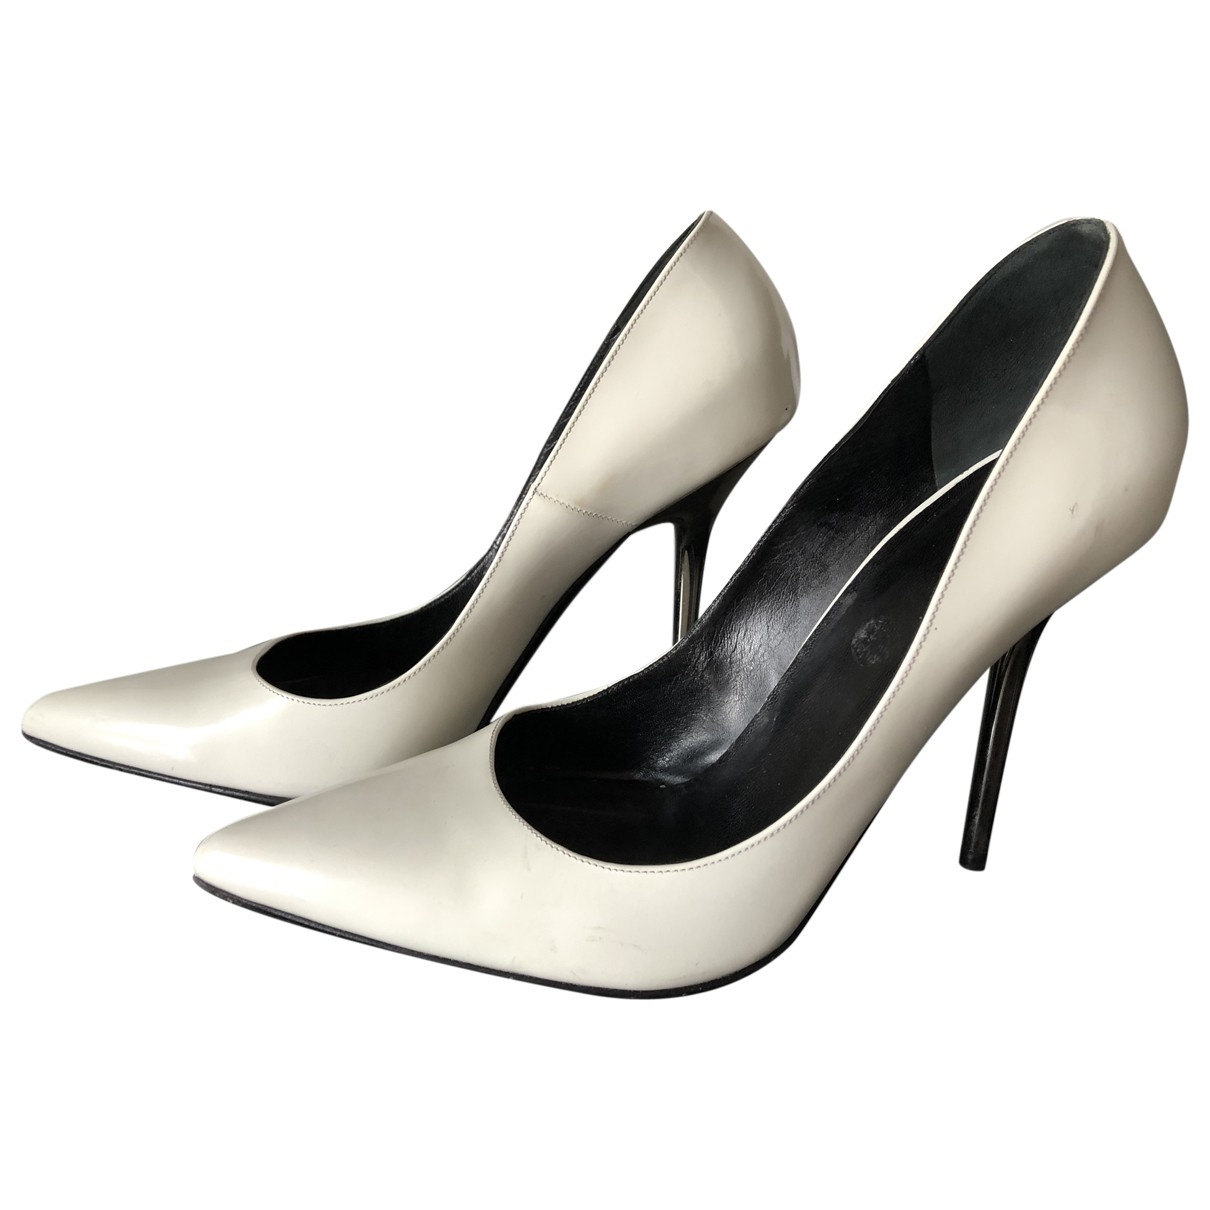 Versace \N White Patent leather Heels for Women 39 EU